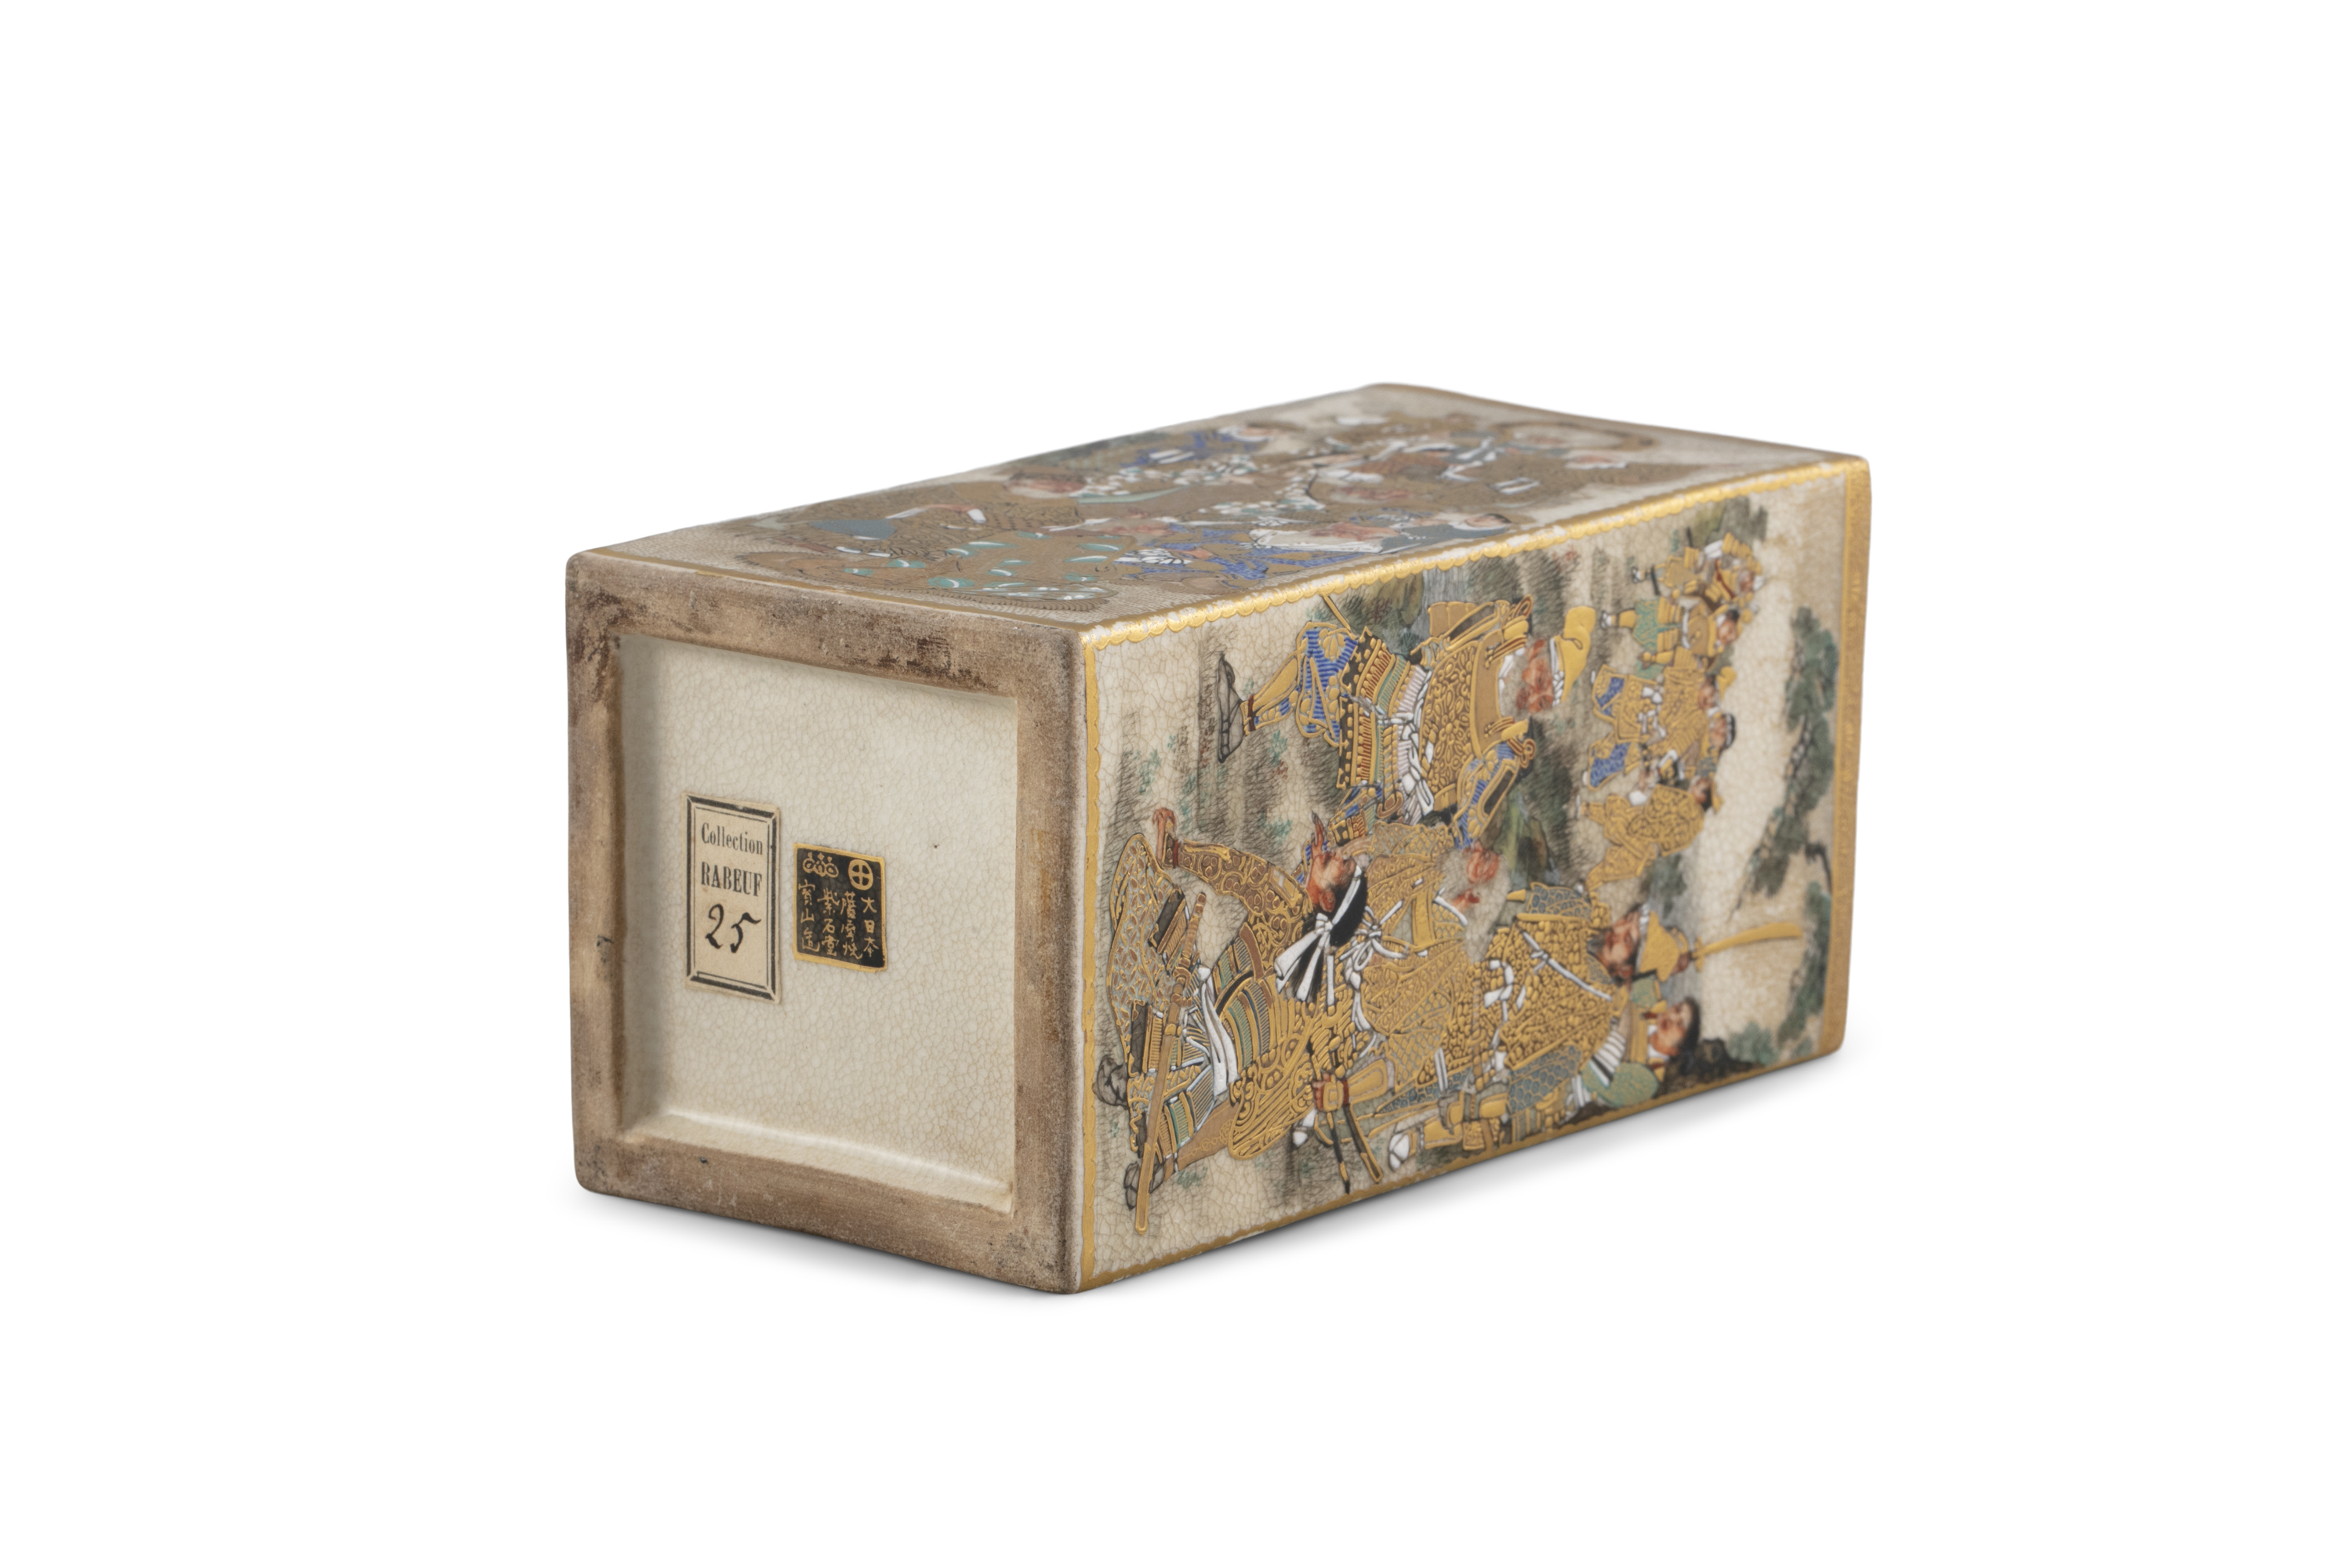 A SATSUMA 'WARRIORS' SQUARE POT POSSIBLY BY RYUZAN 龍山 Japan, Meiji period Richly adorned in gilt and - Image 13 of 14